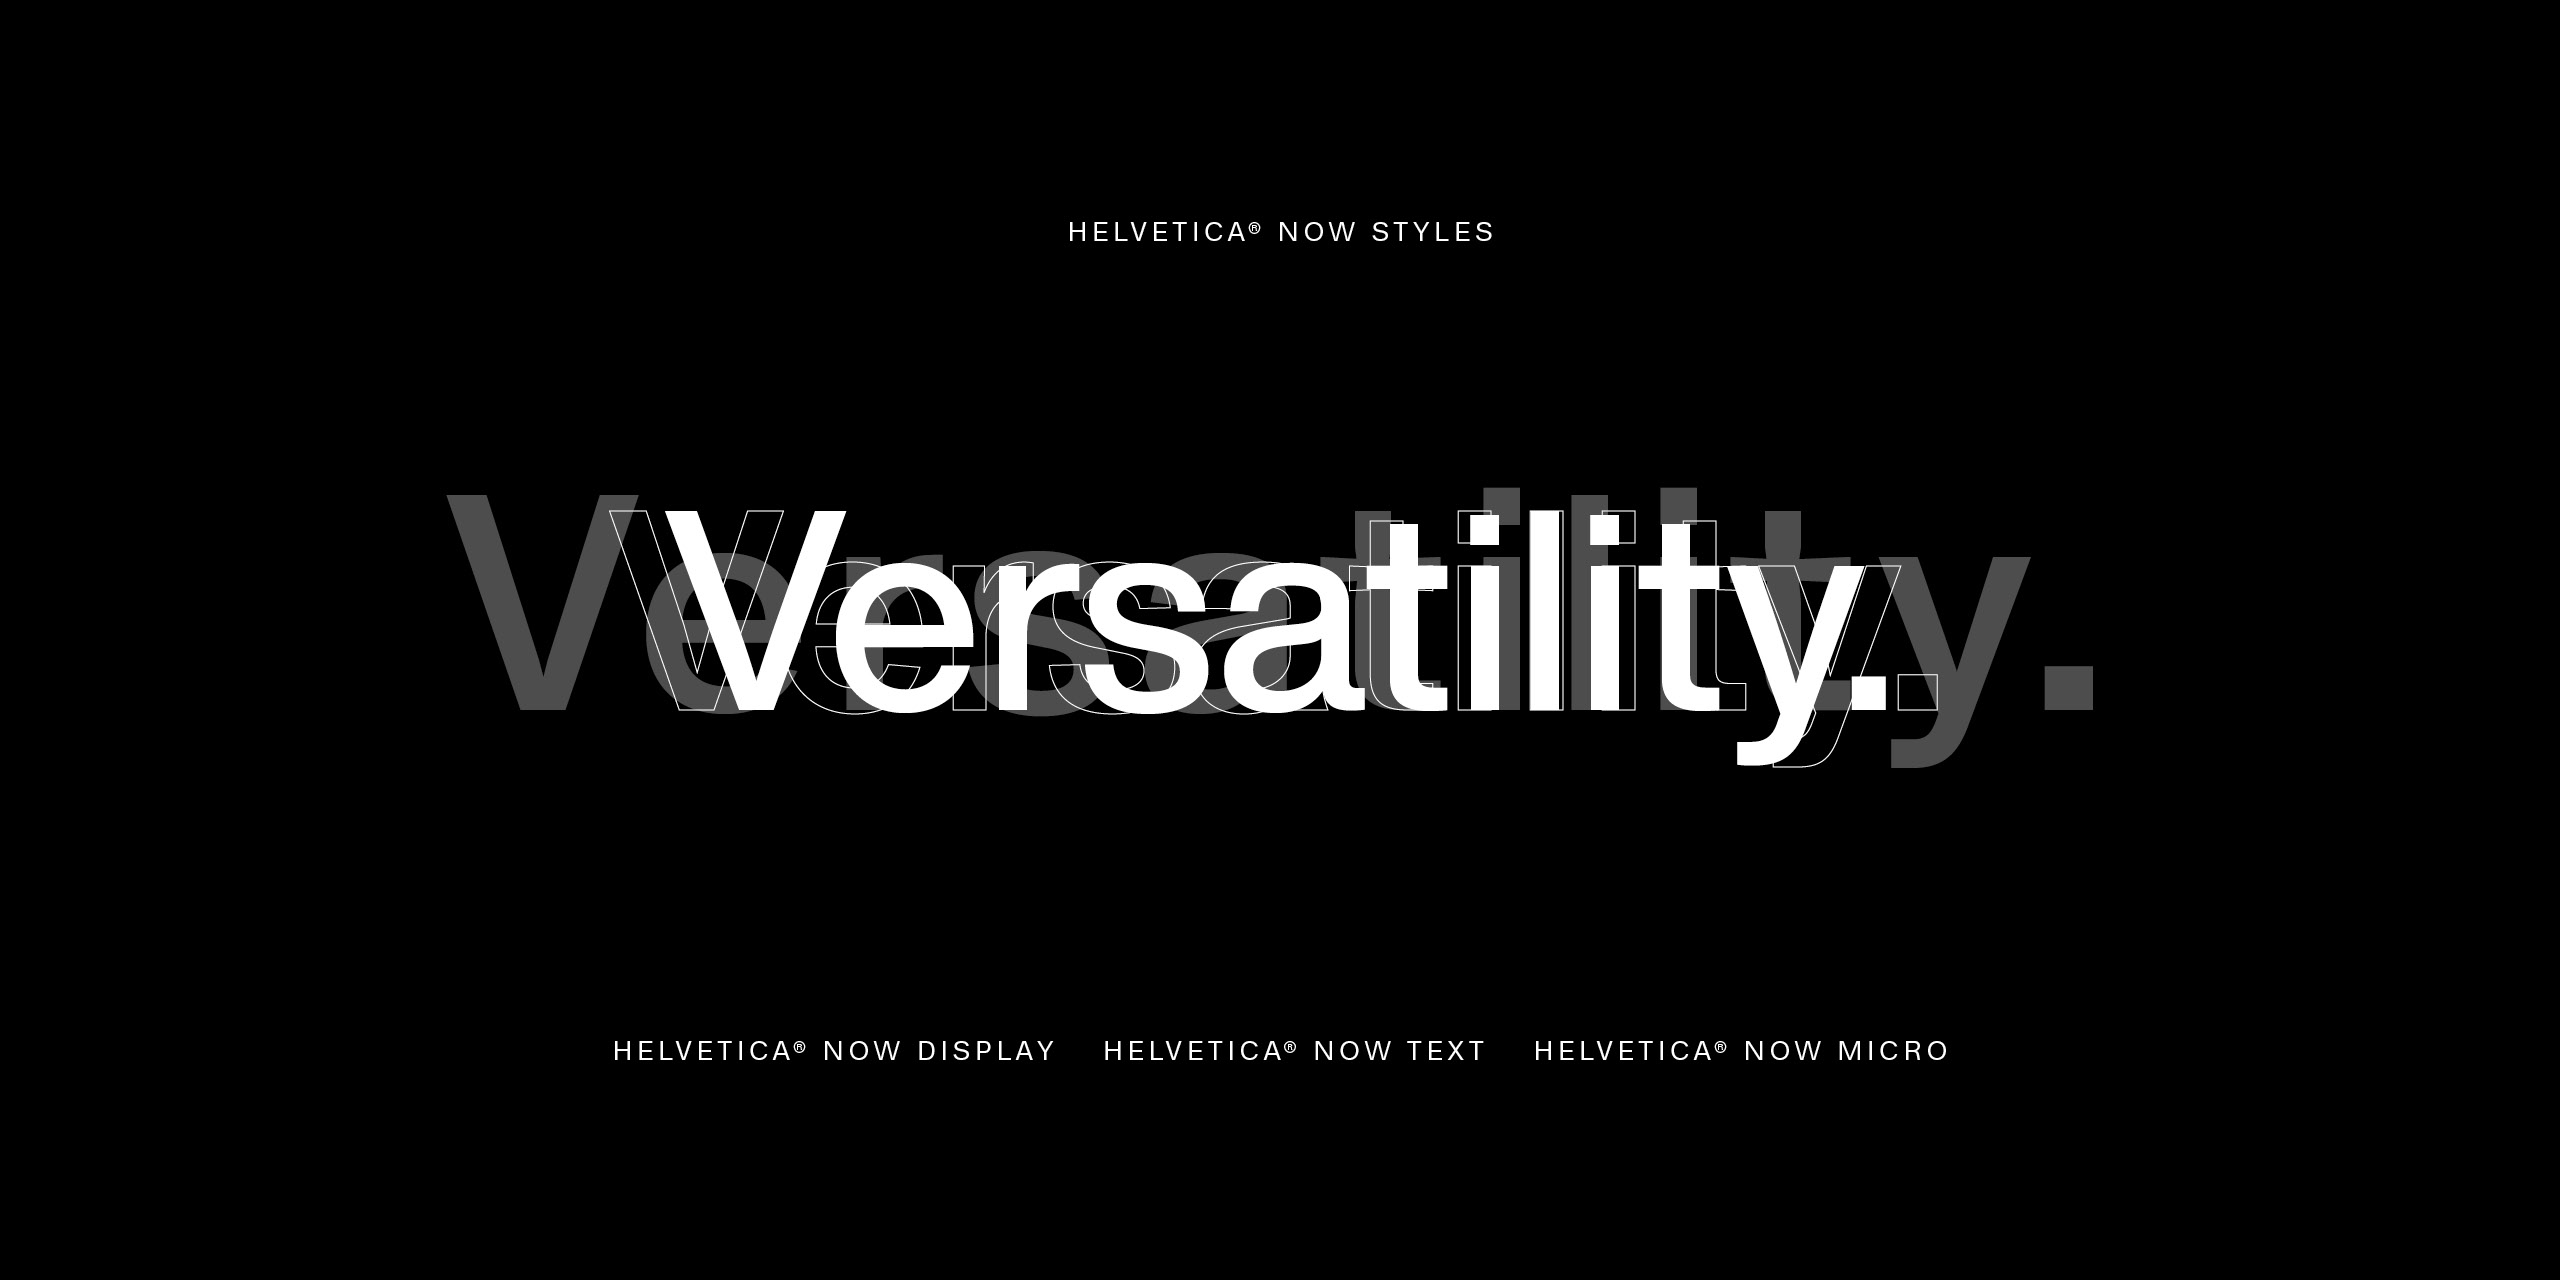 Helvetica Font Gets a Refresh After 35 Years